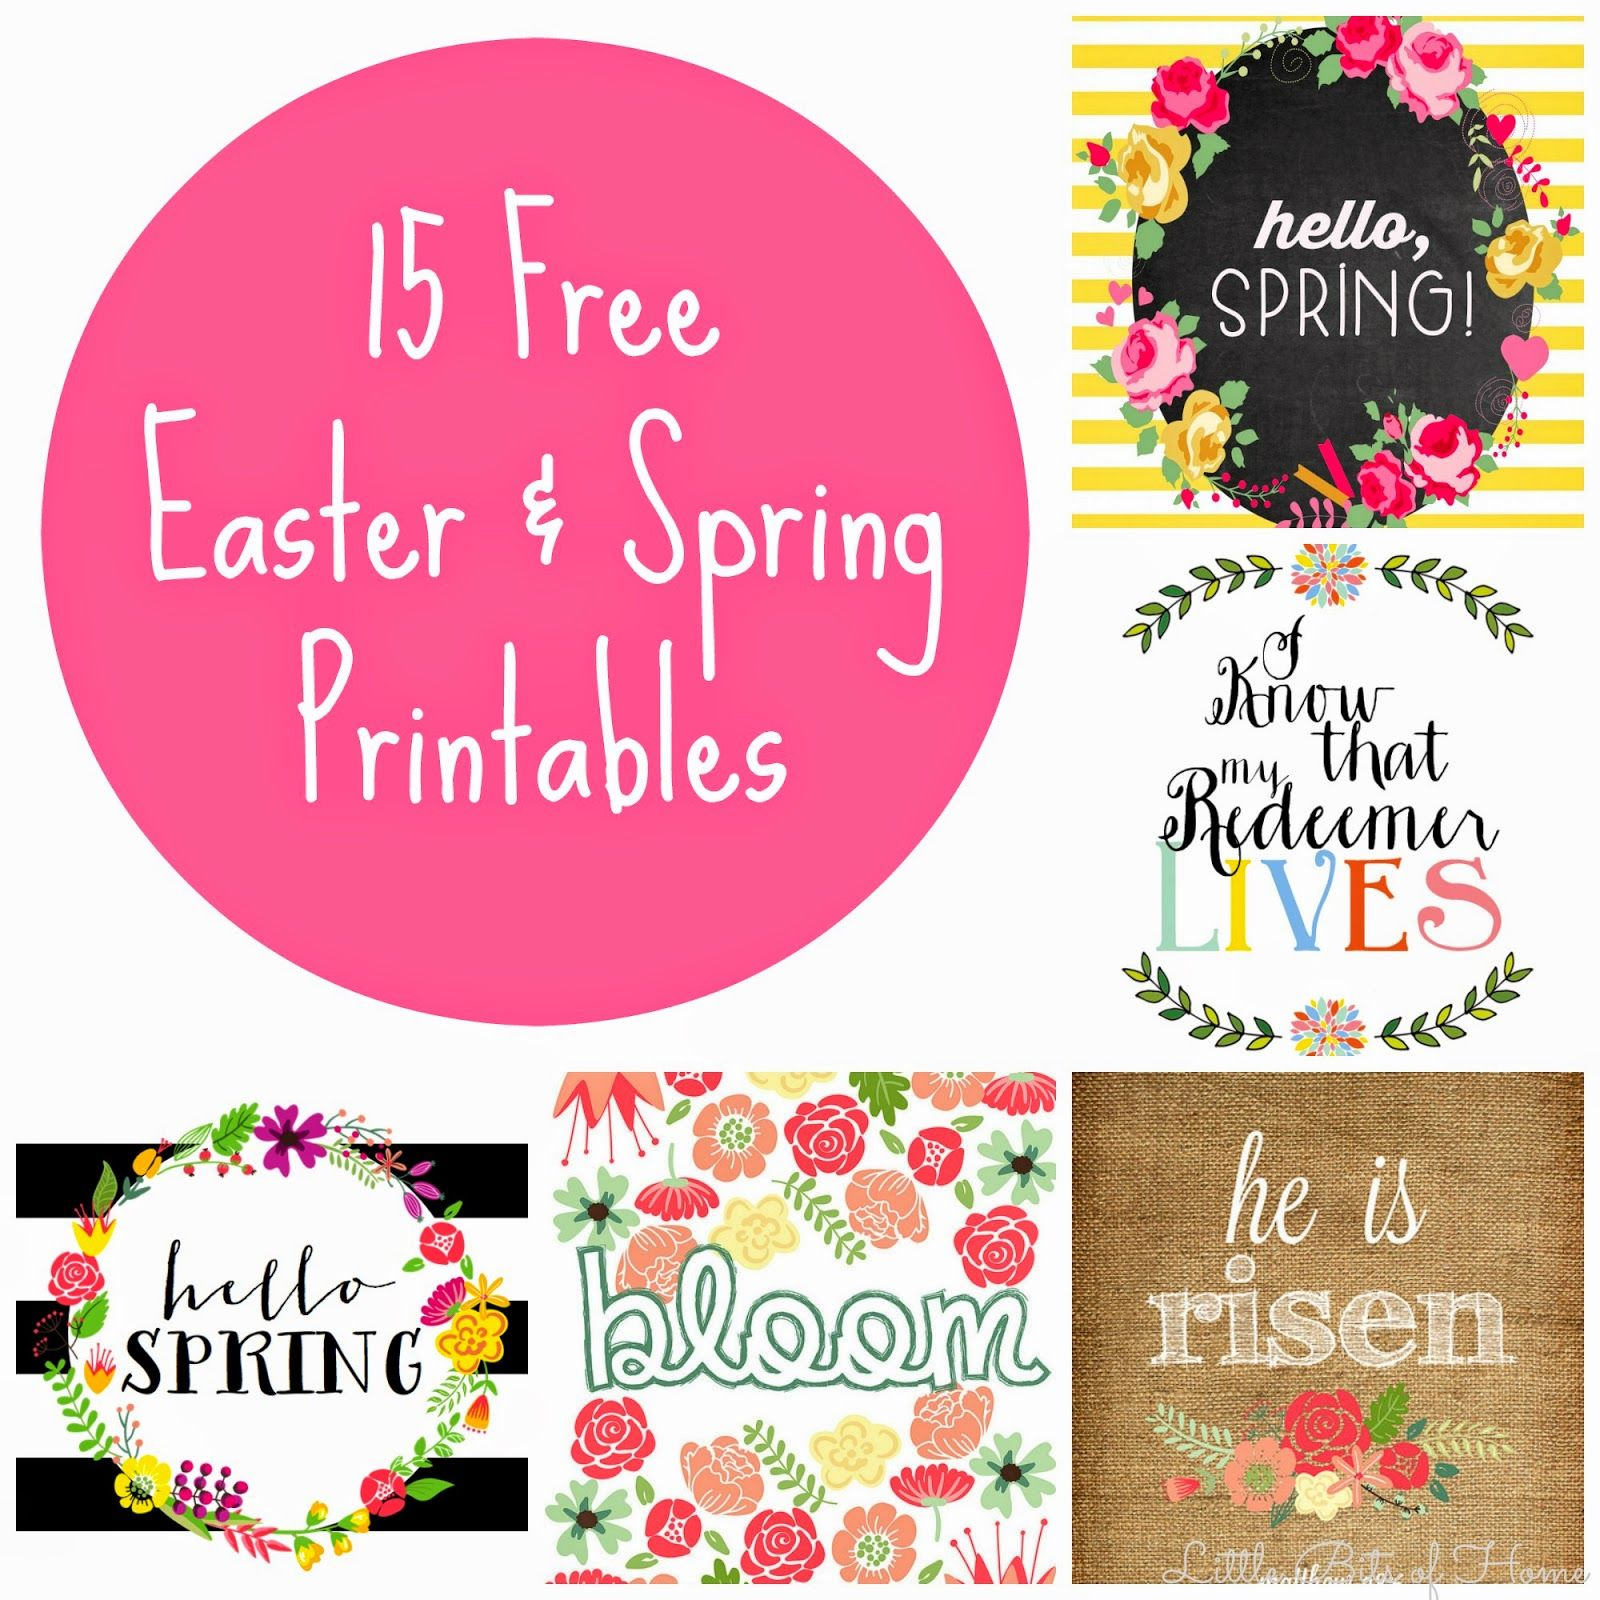 15 Free Spring And Easter Printables   Artsy Stuff   Pinterest - Free Printable Spring Decorations